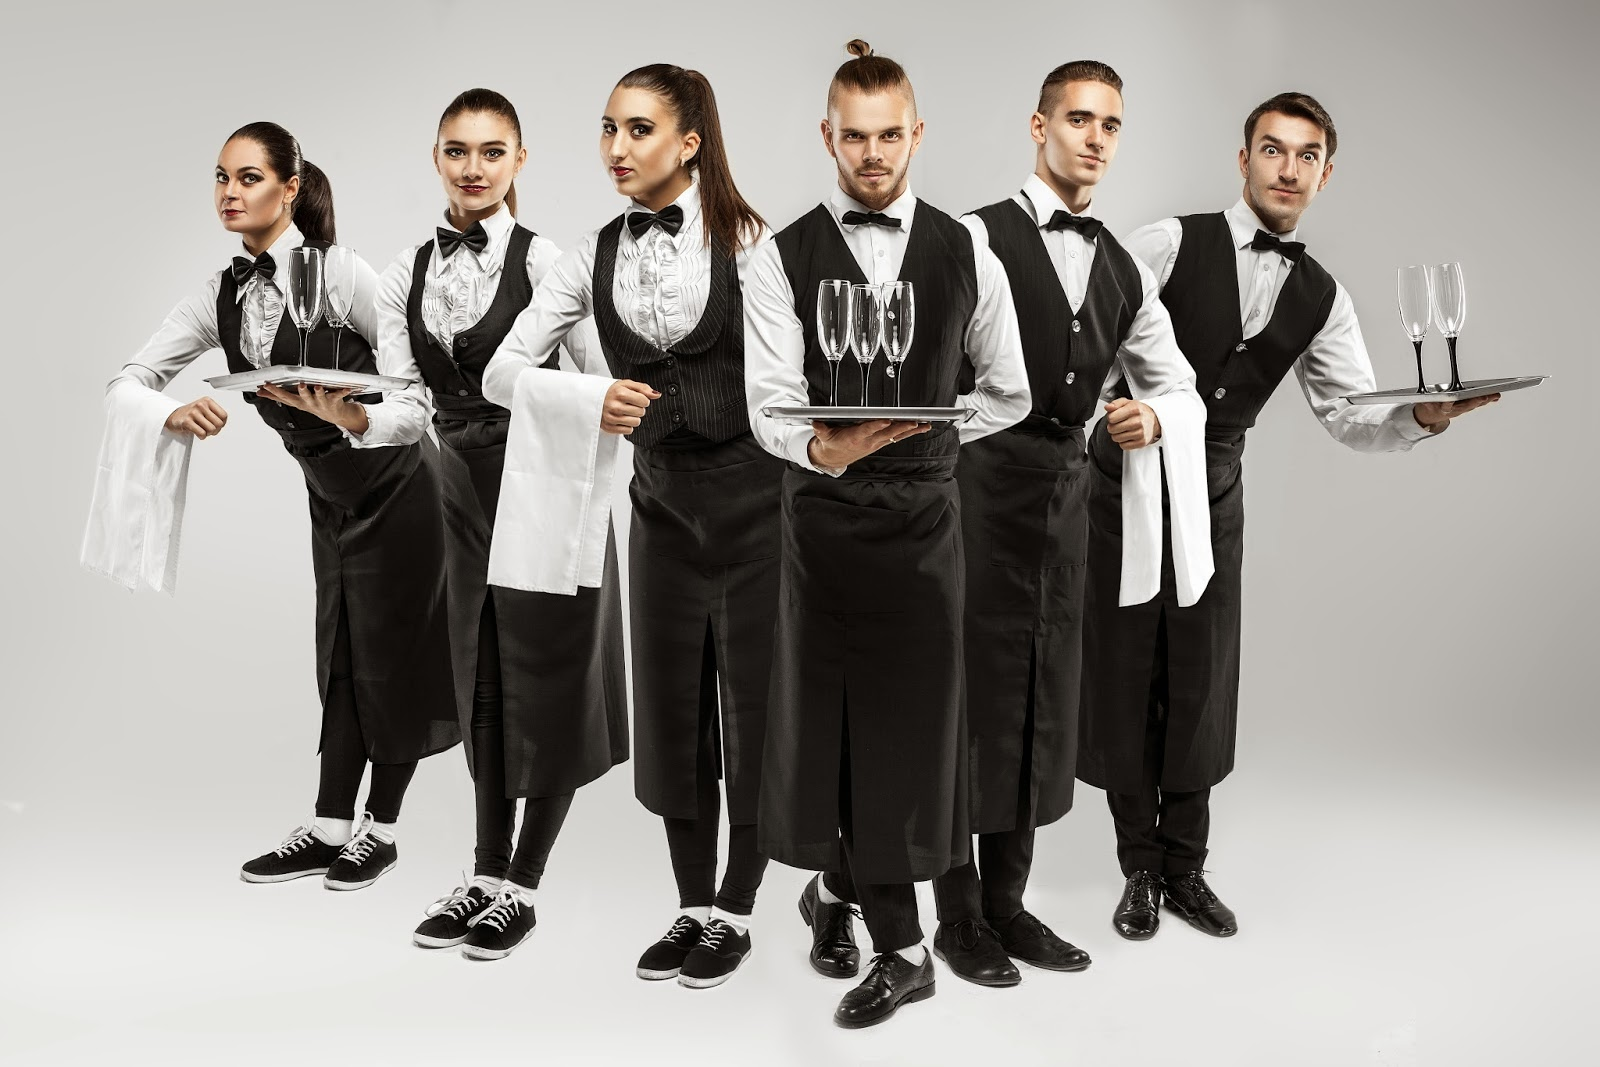 Waiter wallpapers high quality download free - Wait wallpaper hd ...